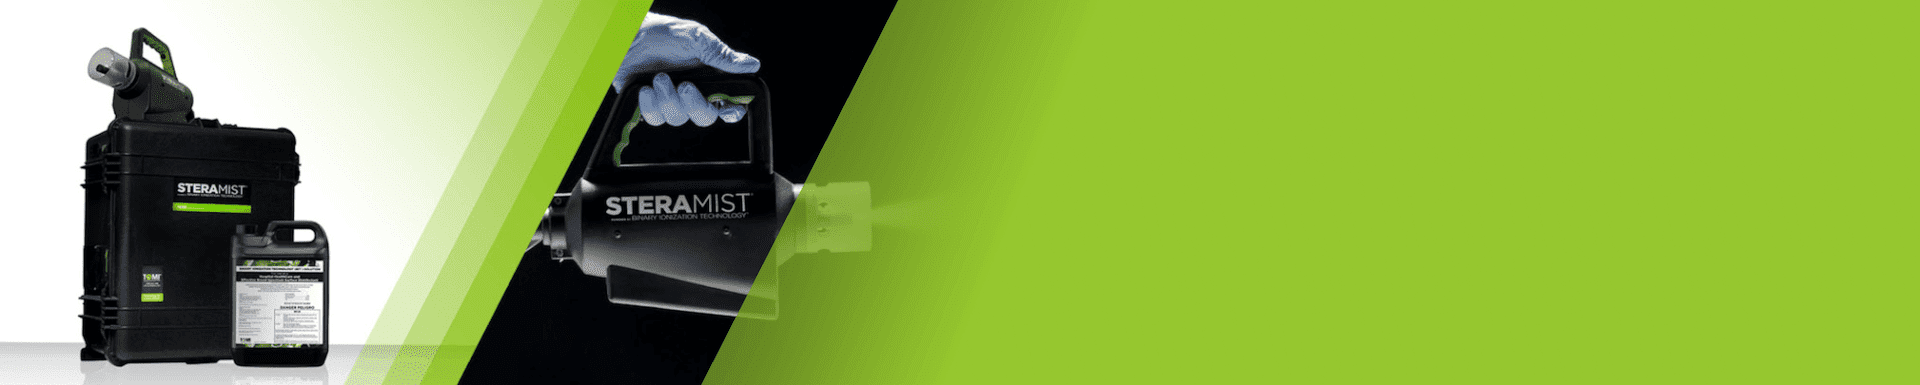 green background with cleaning device labeled with SteraMist